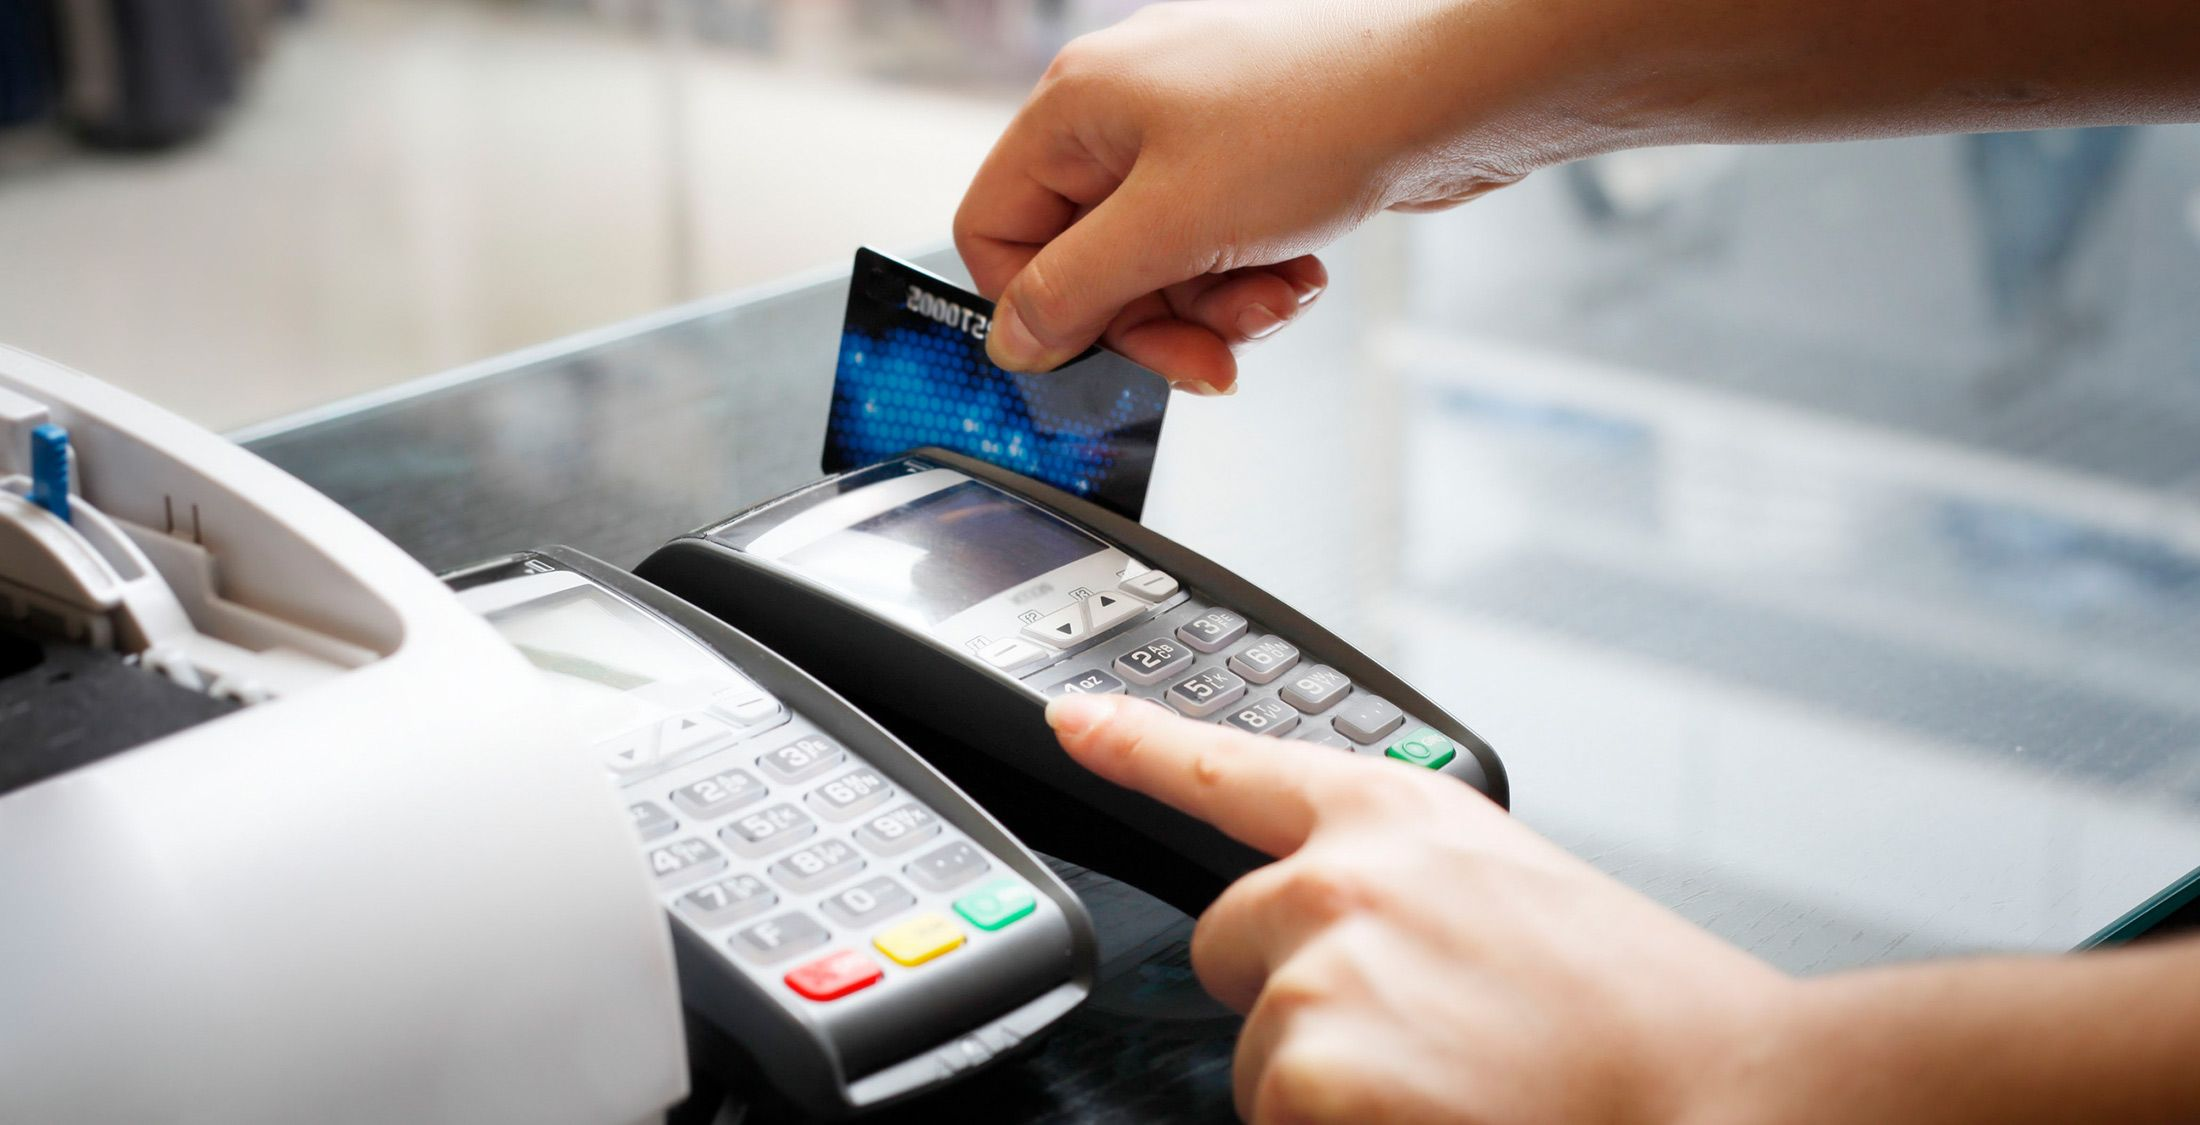 swipe credit card for payment at store